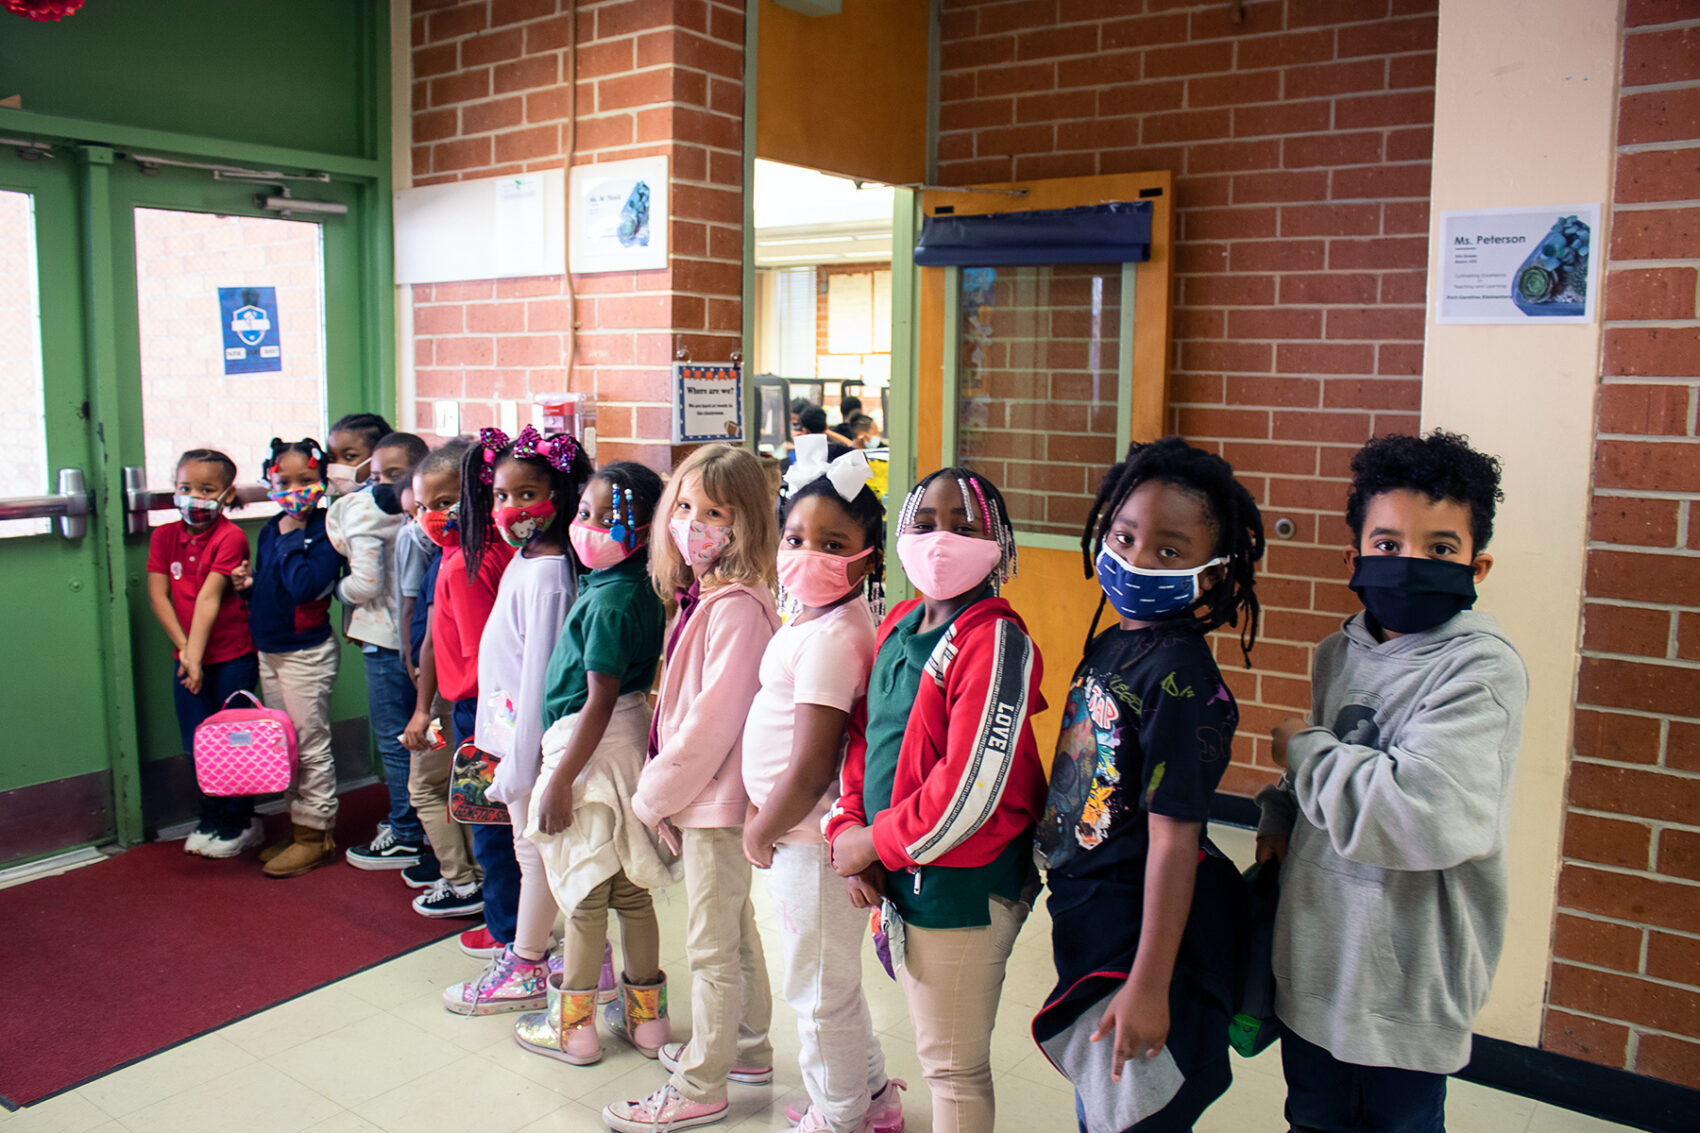 Fort Caroline students lined up in orderly fashion